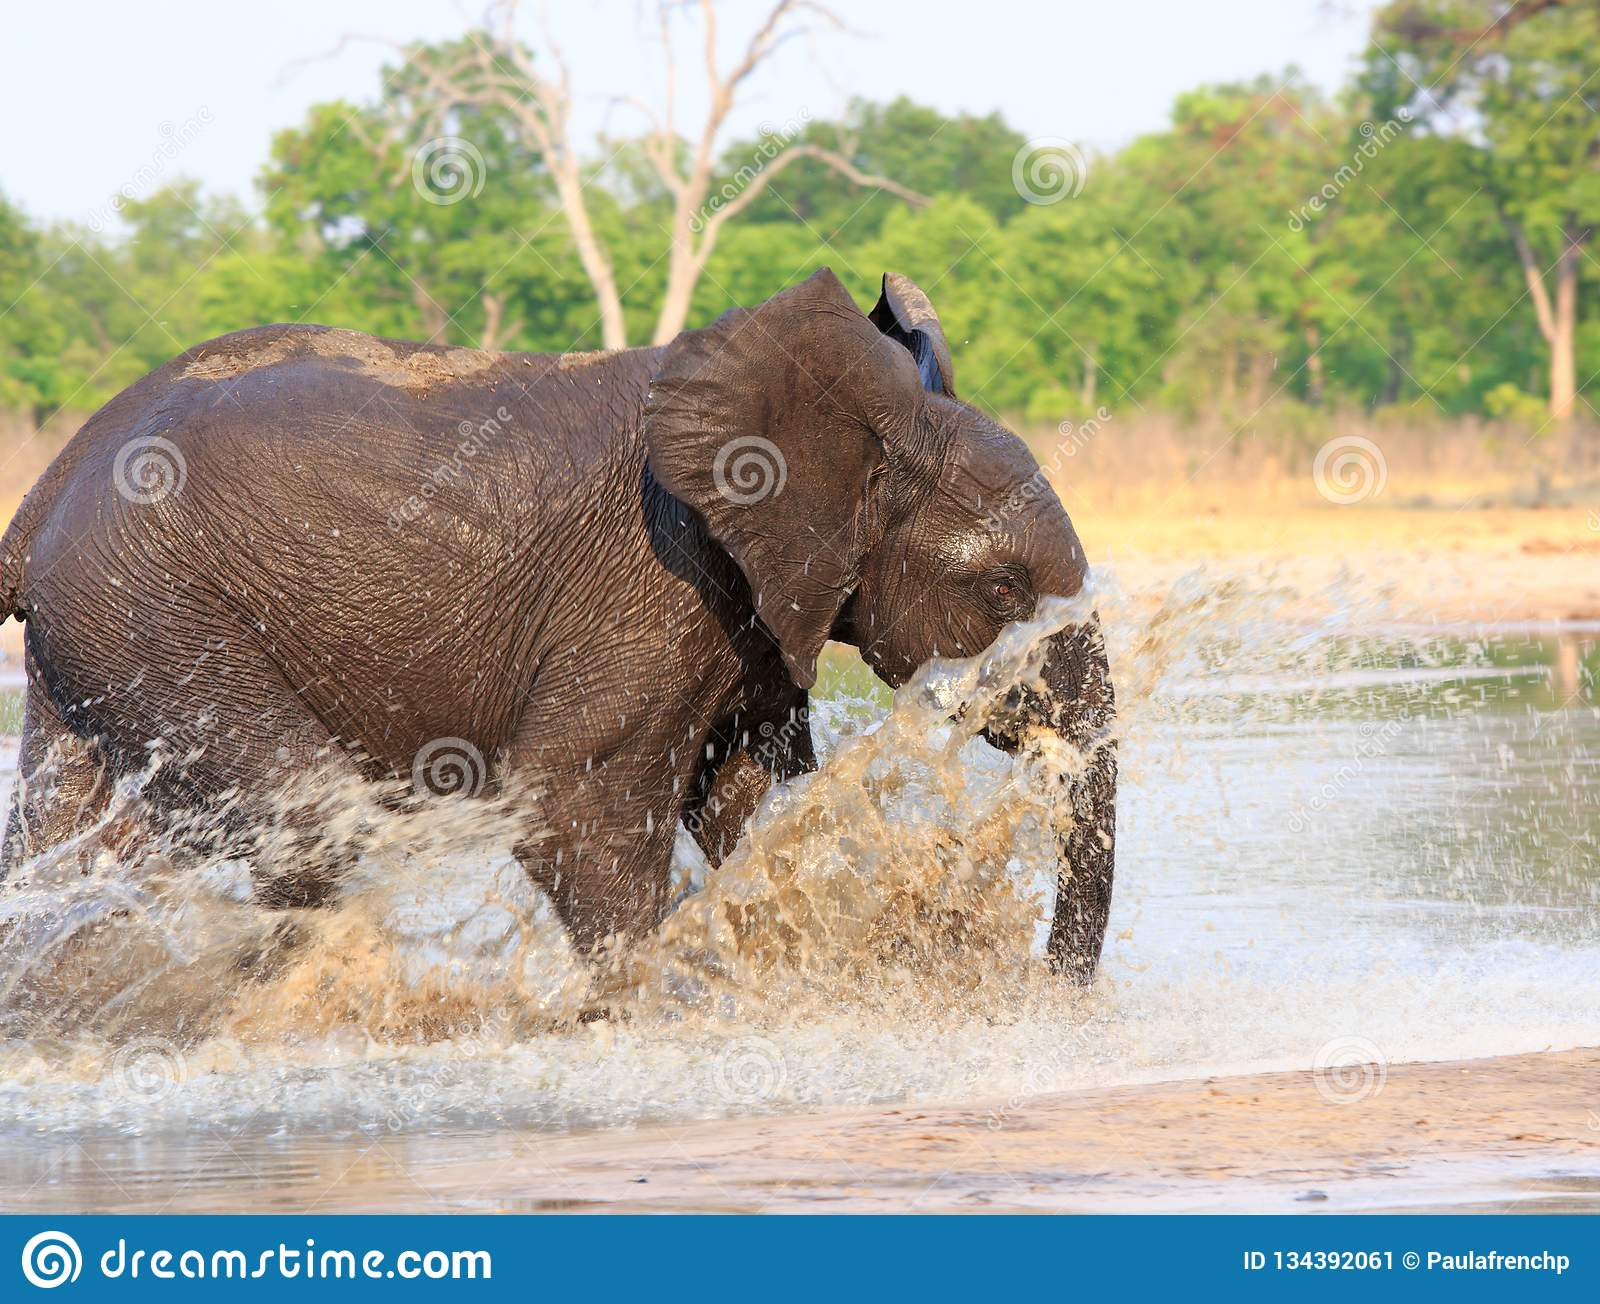 Elephant running through the water with lots of splashing in Hwange National Park